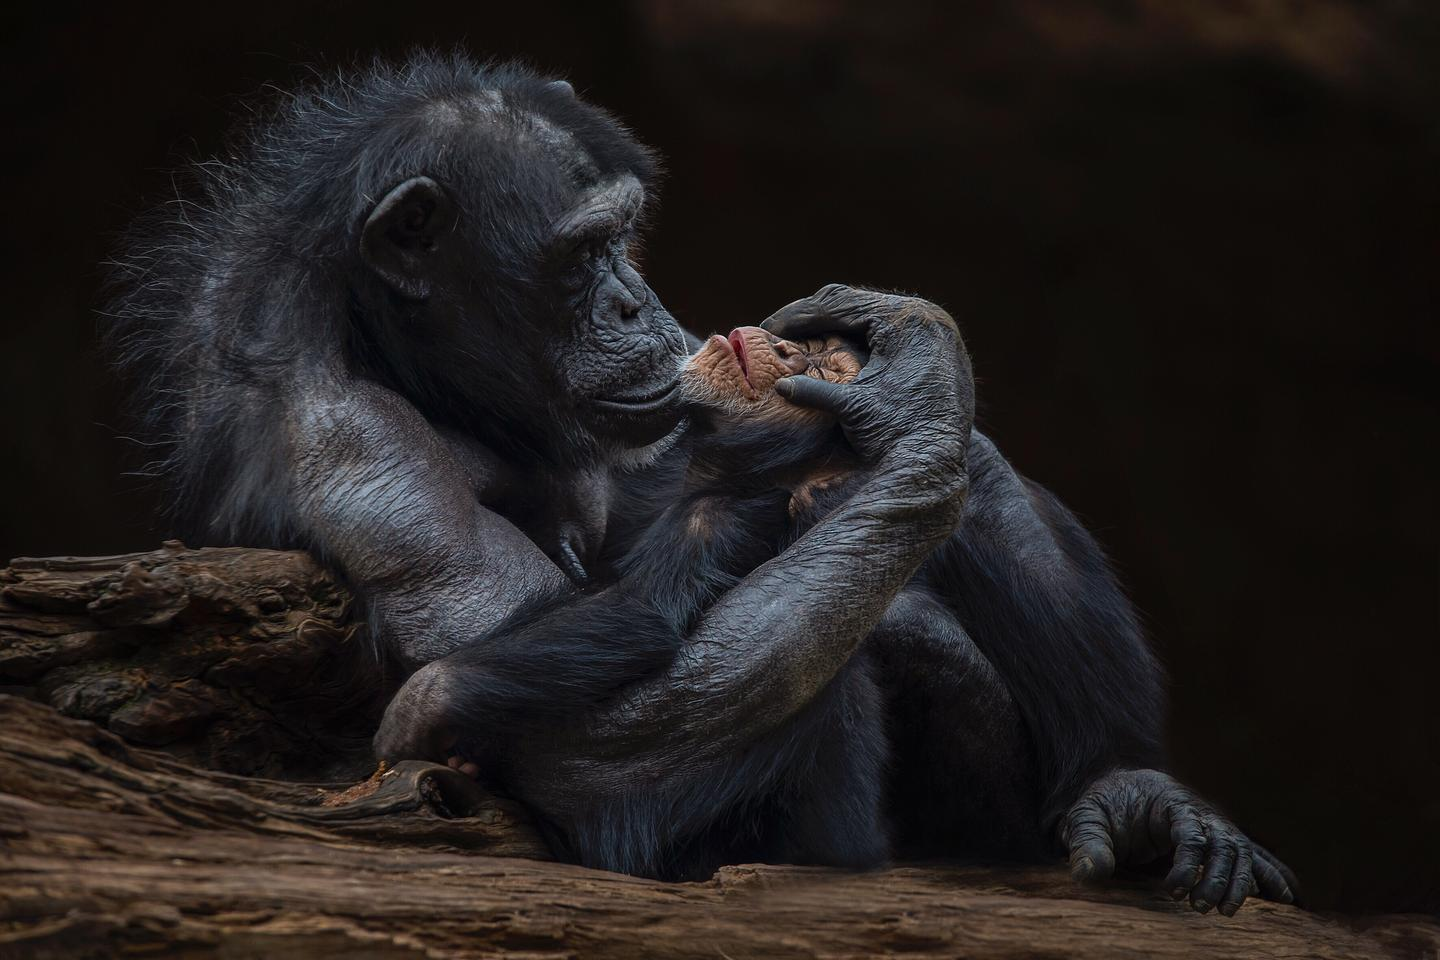 """Motherly love"" captured at the Tenerife zoo"